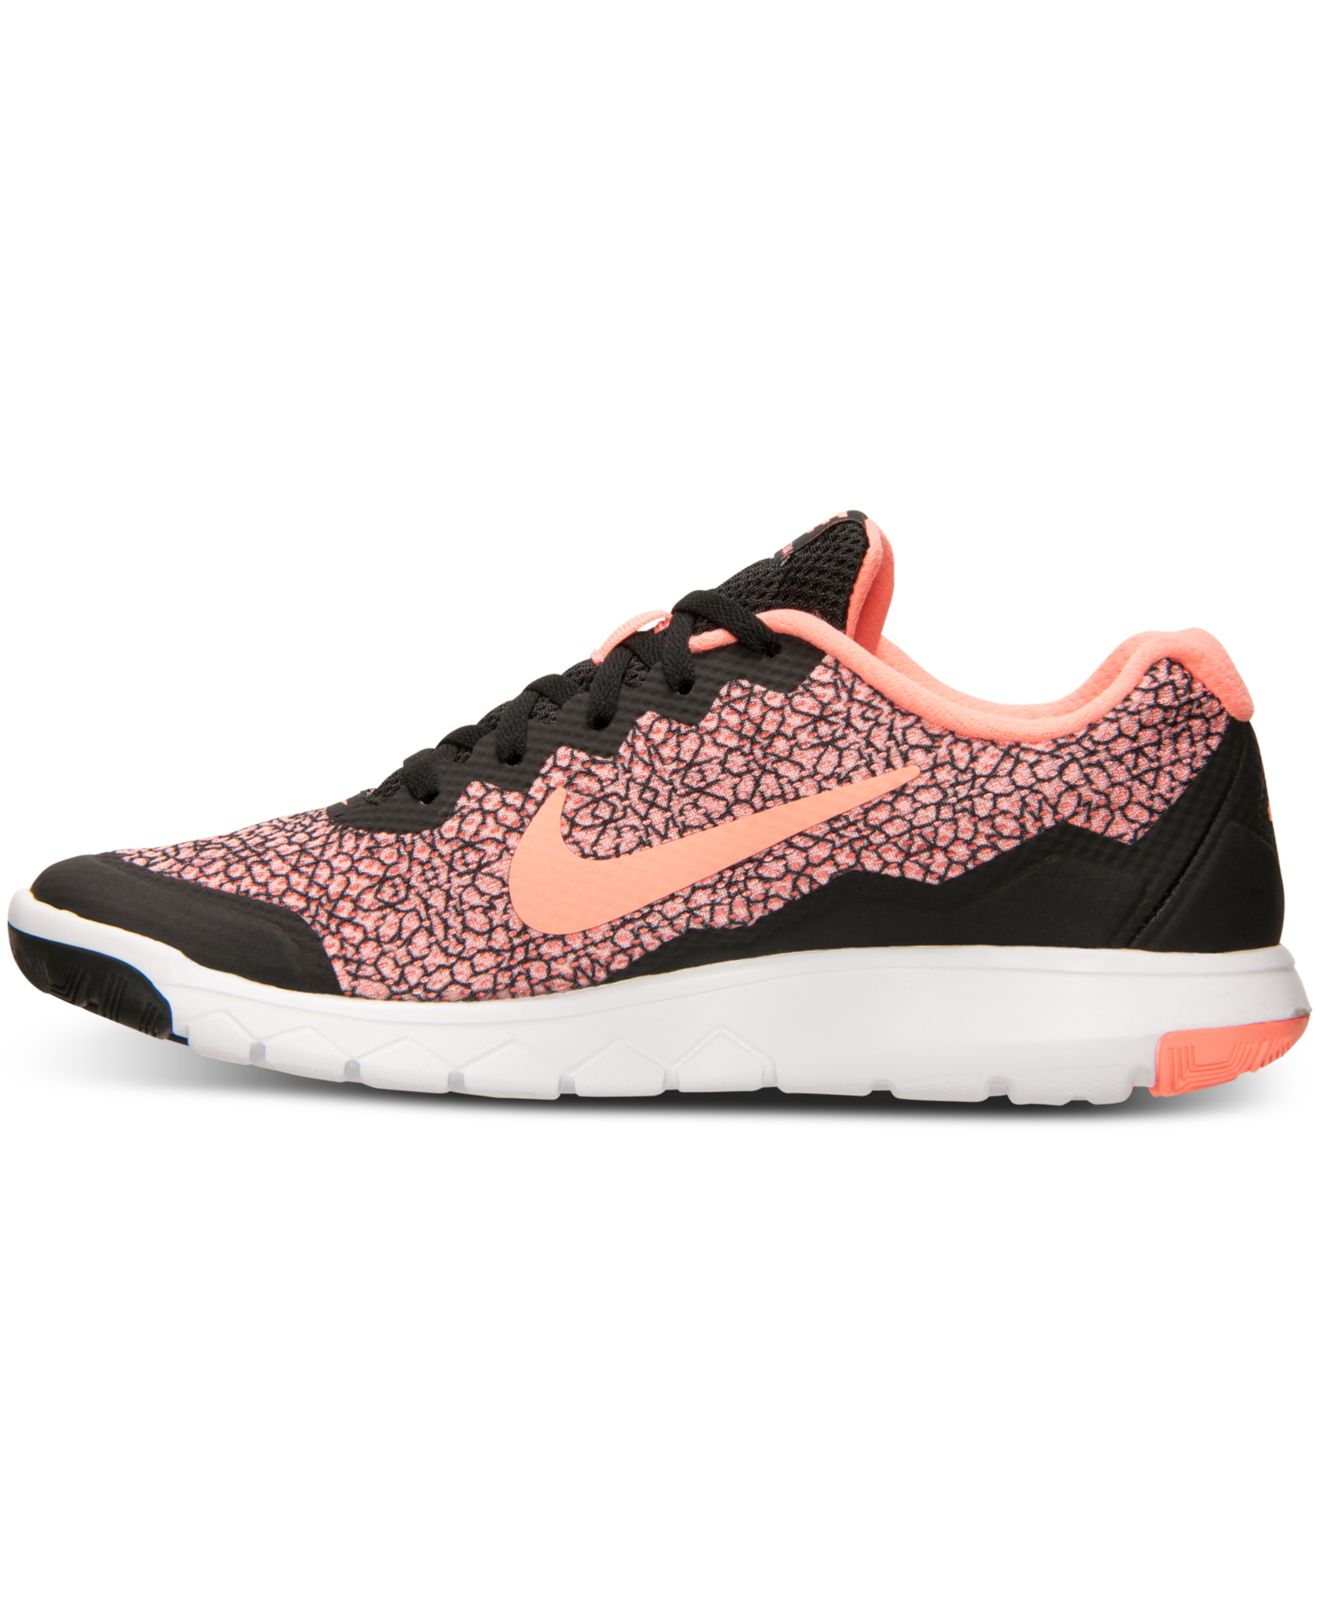 Lyst - Nike Women's Flex Experience Run 4 Premium Running Sneakers From  Finish Line in Pink